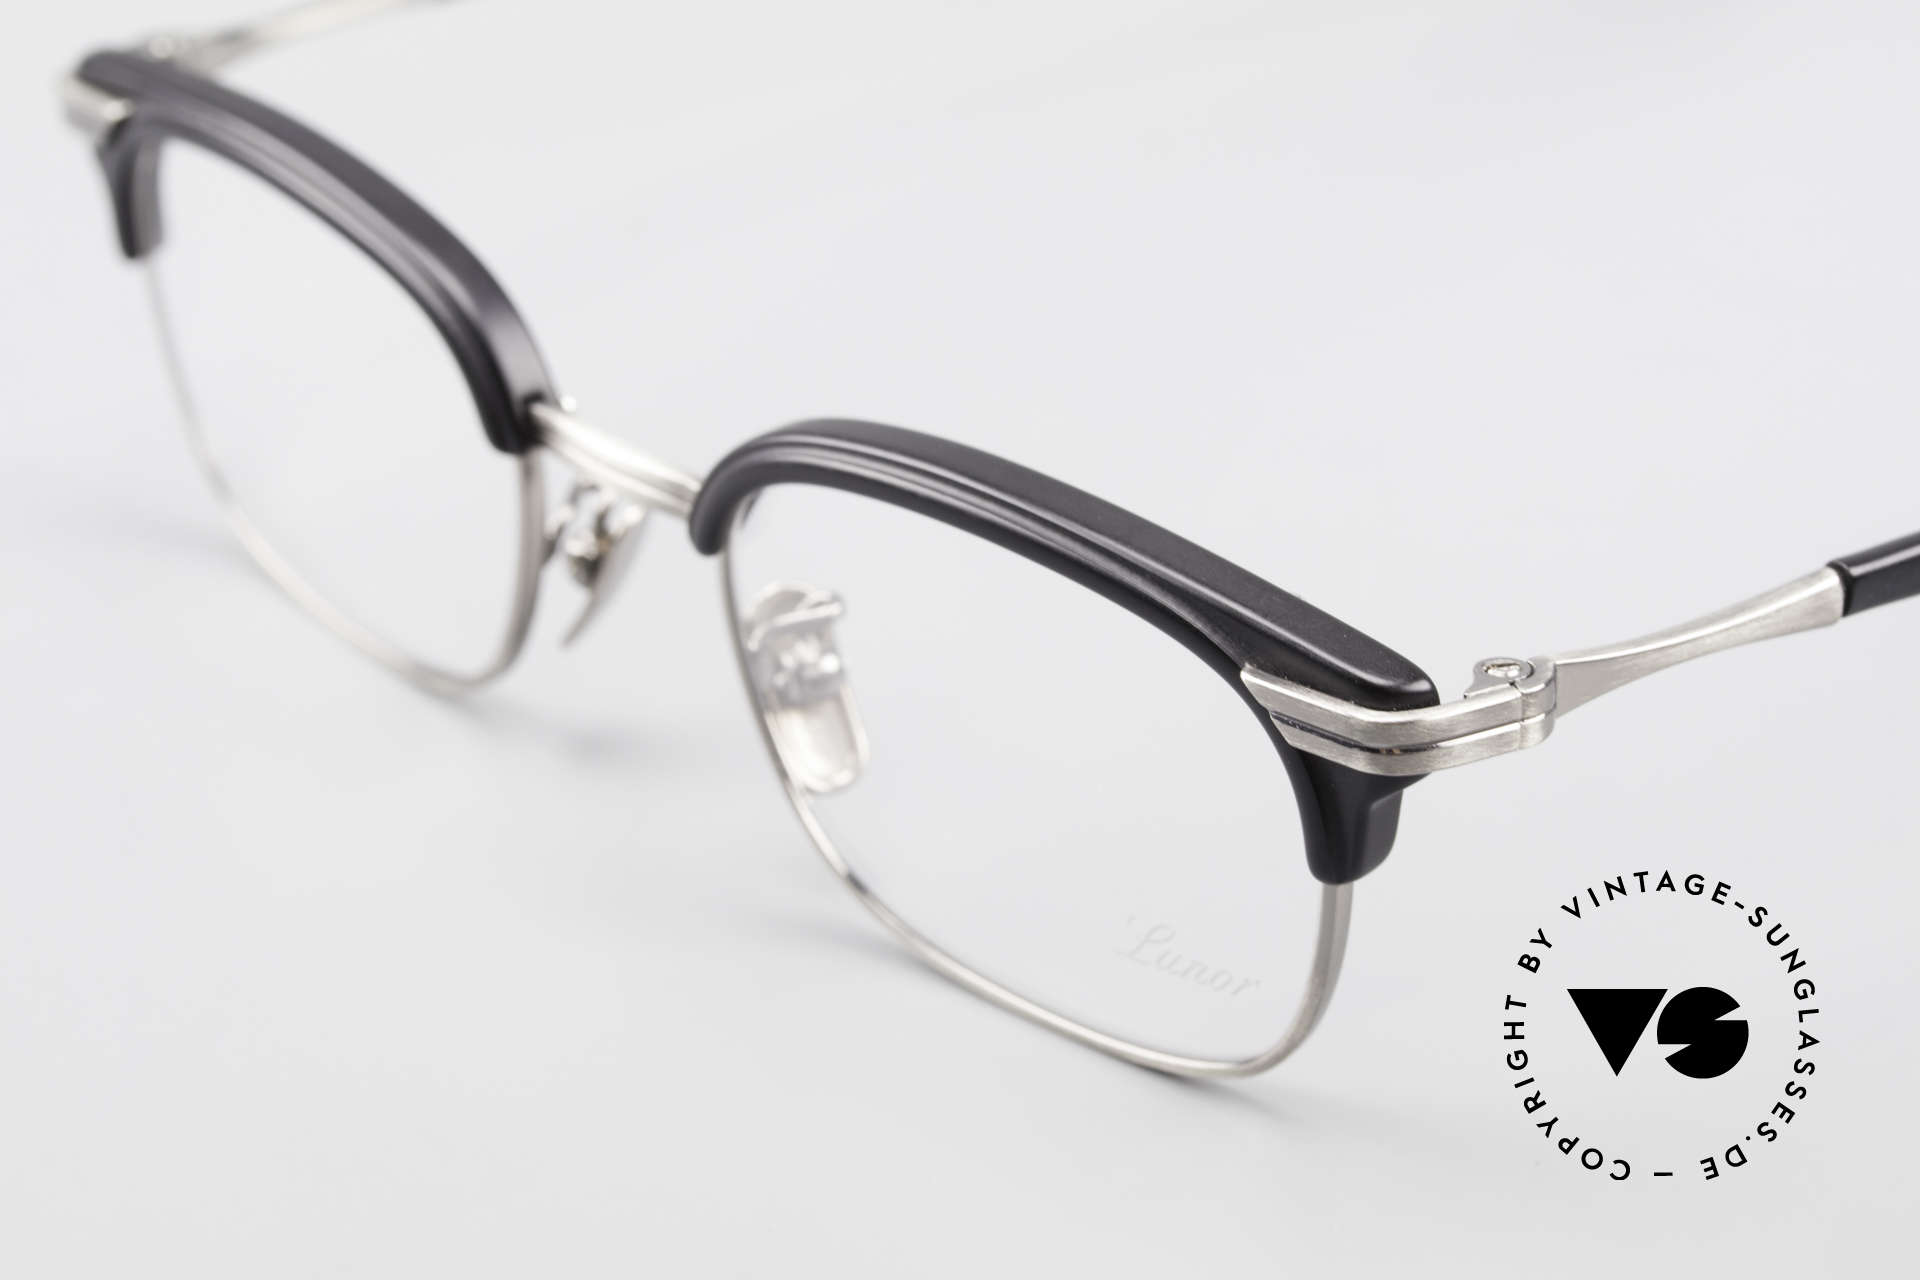 Lunor M92 Striking Vintage Glasses Small, unworn RARITY (for all lovers of quality) in SMALL size, Made for Men